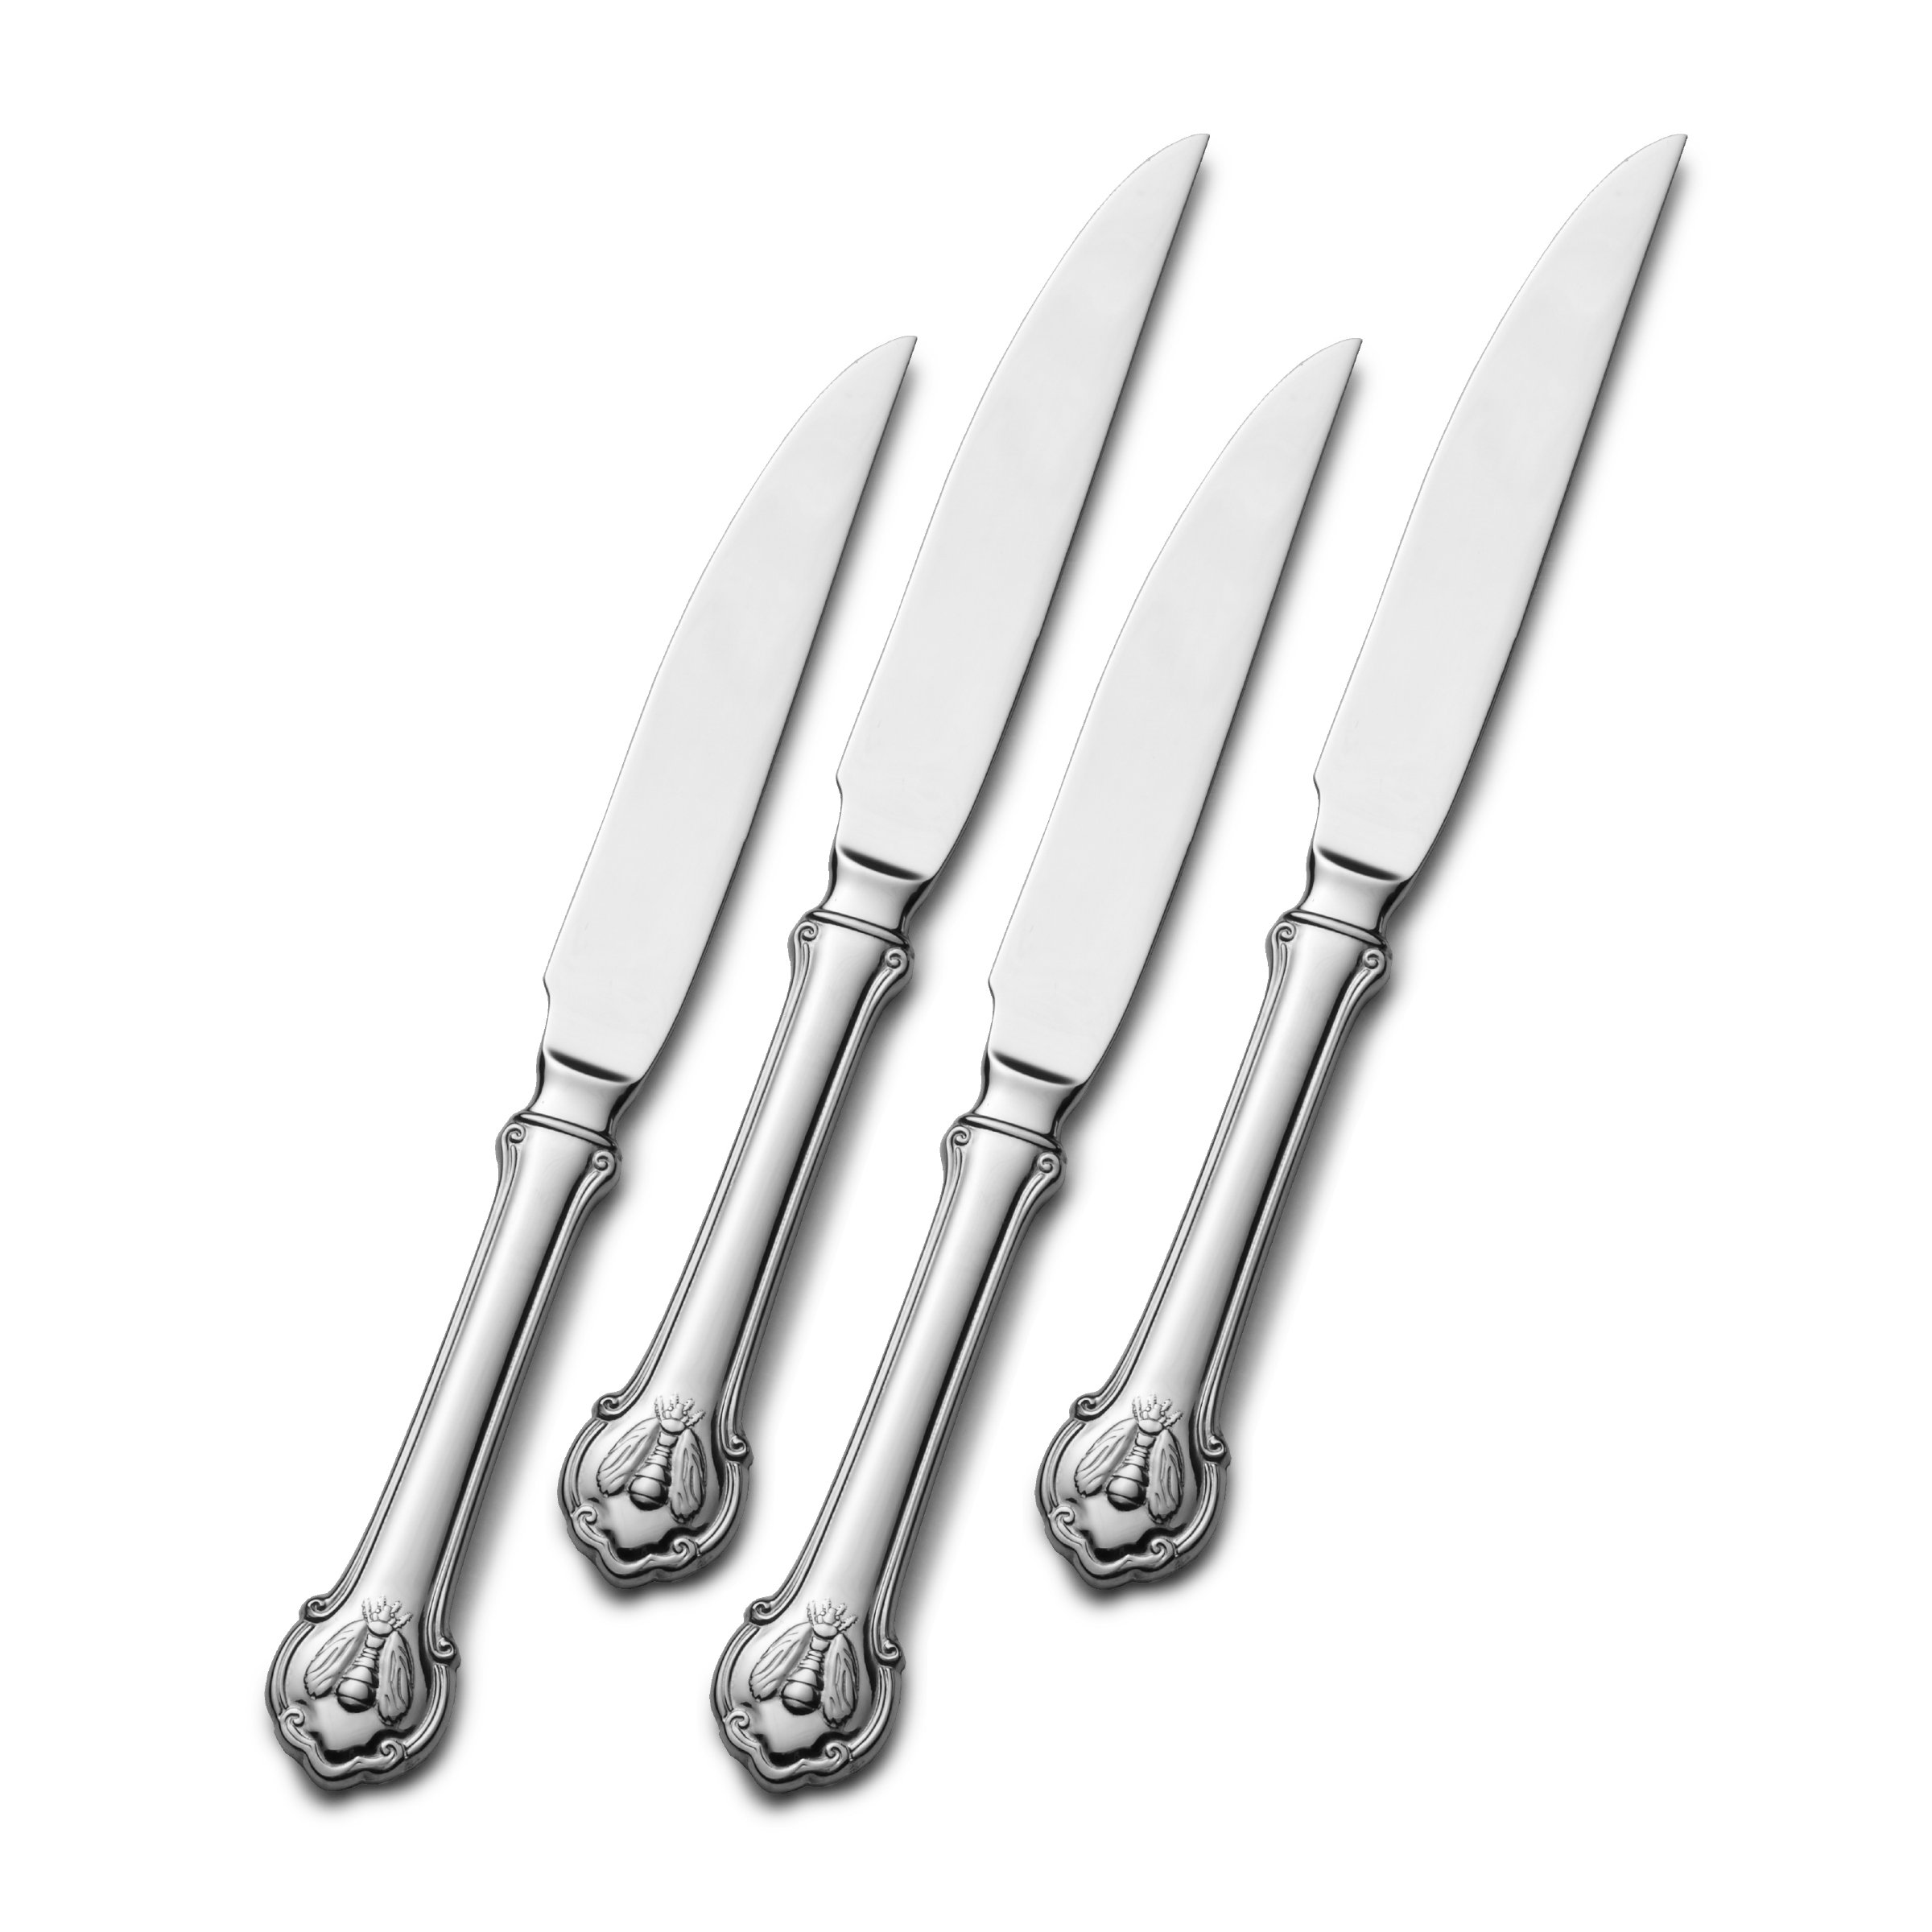 Wallace Napoleon Bee Stainless Steel Steak Knife, Set of 4, Silver